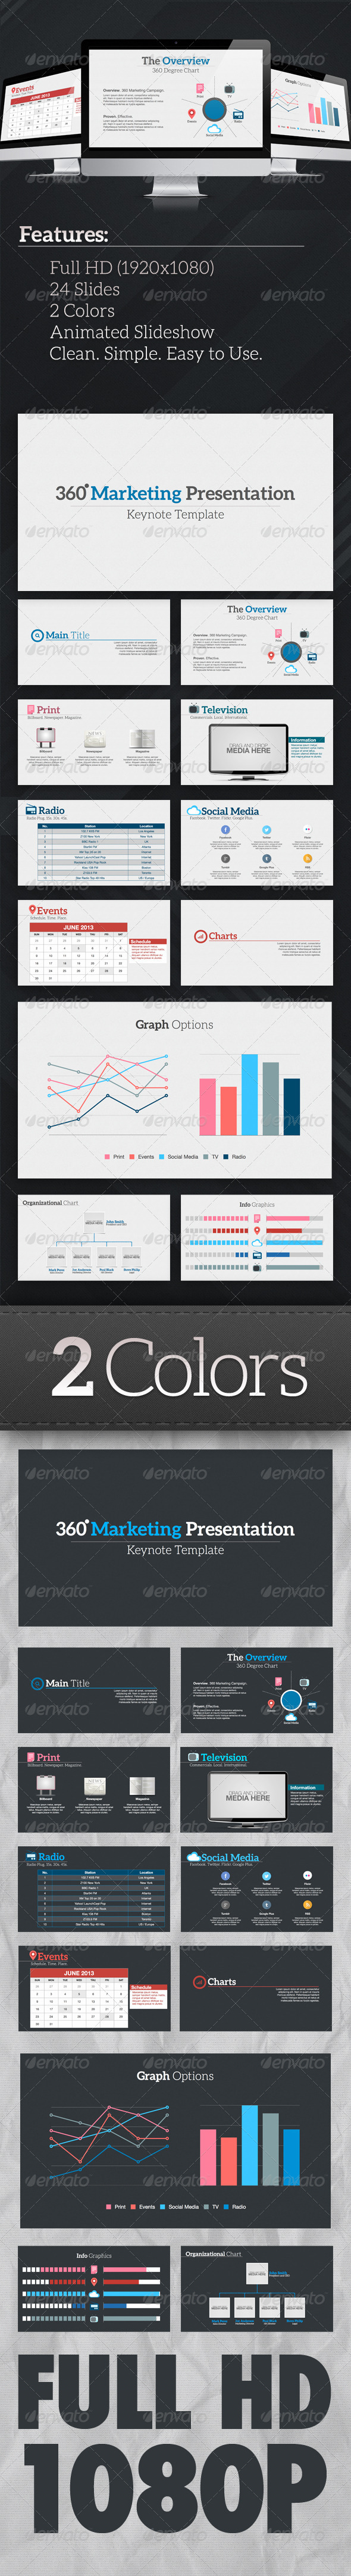 GraphicRiver 360 Degree Marketing Keynote Template 4825260